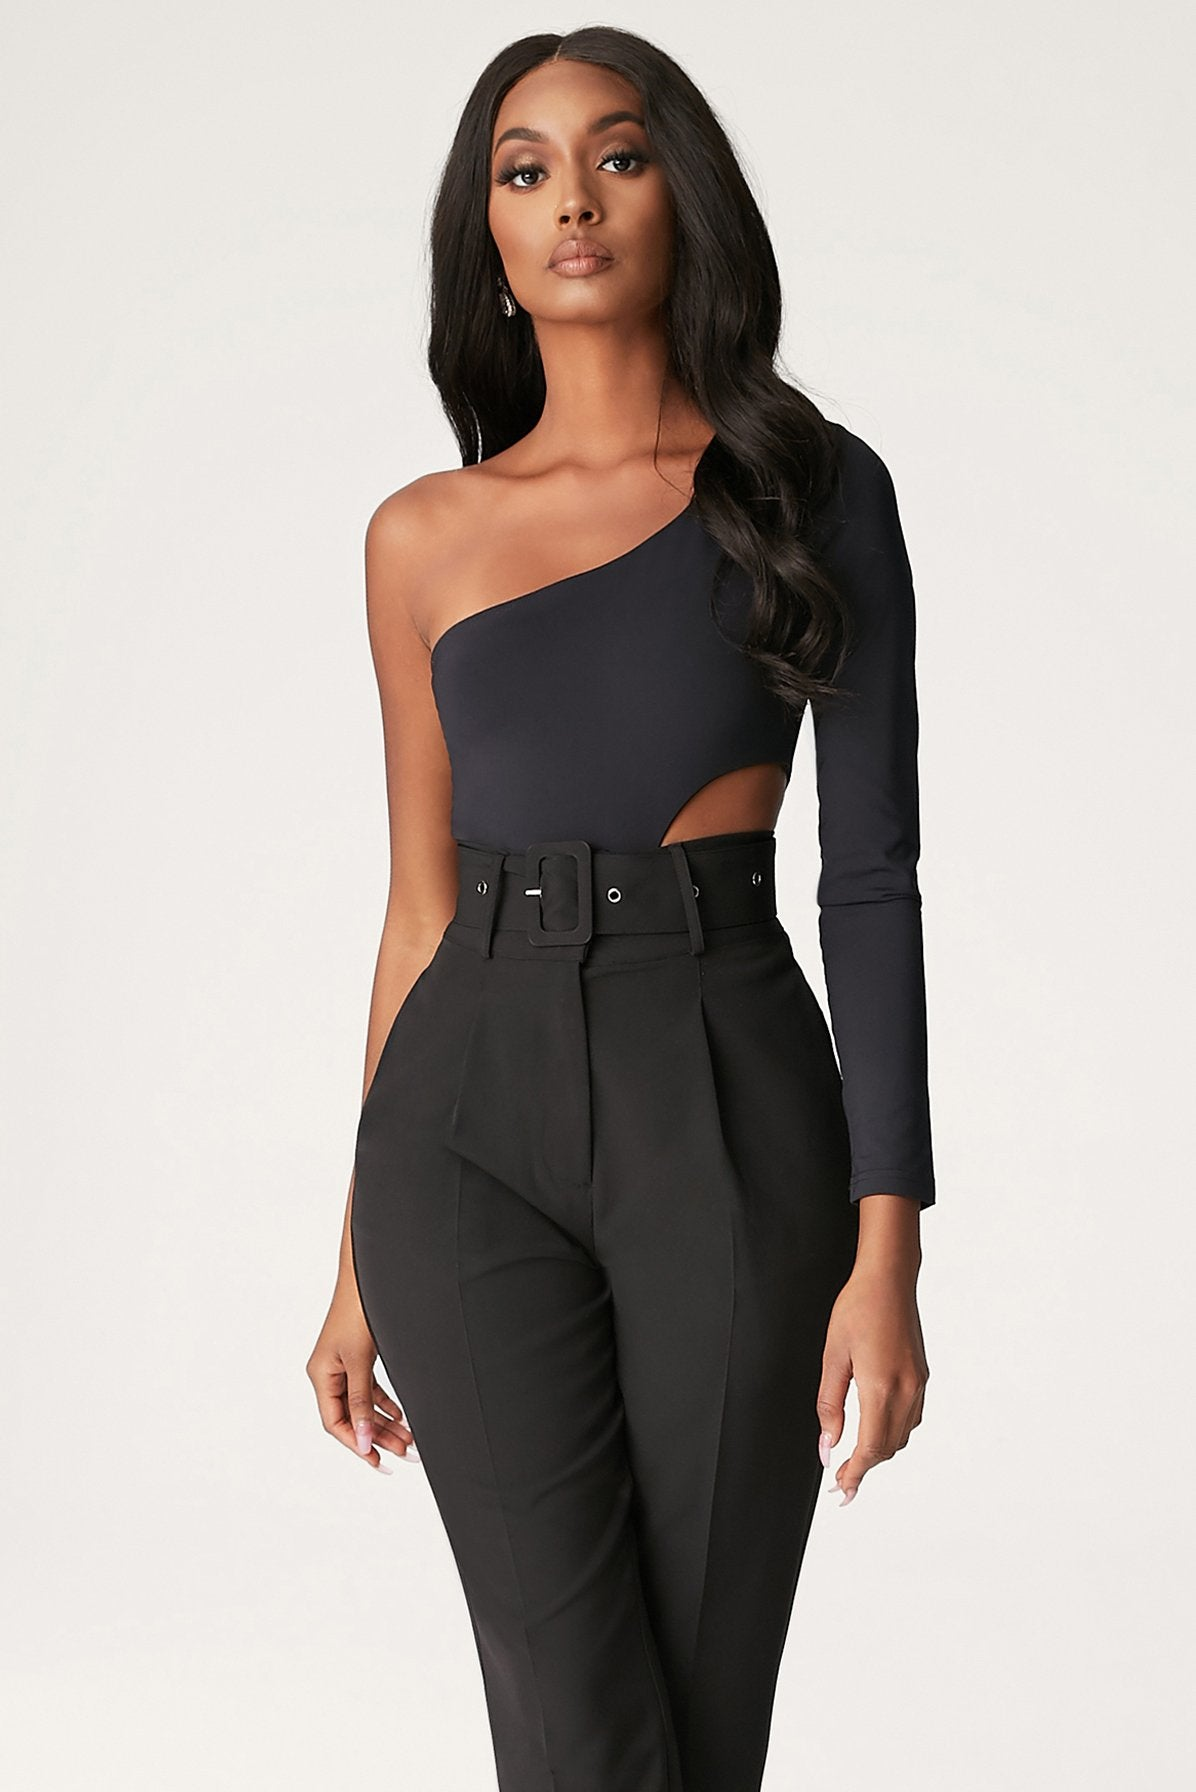 Bexley One Shoulder Cut Out Bodysuit - Black - MESHKI